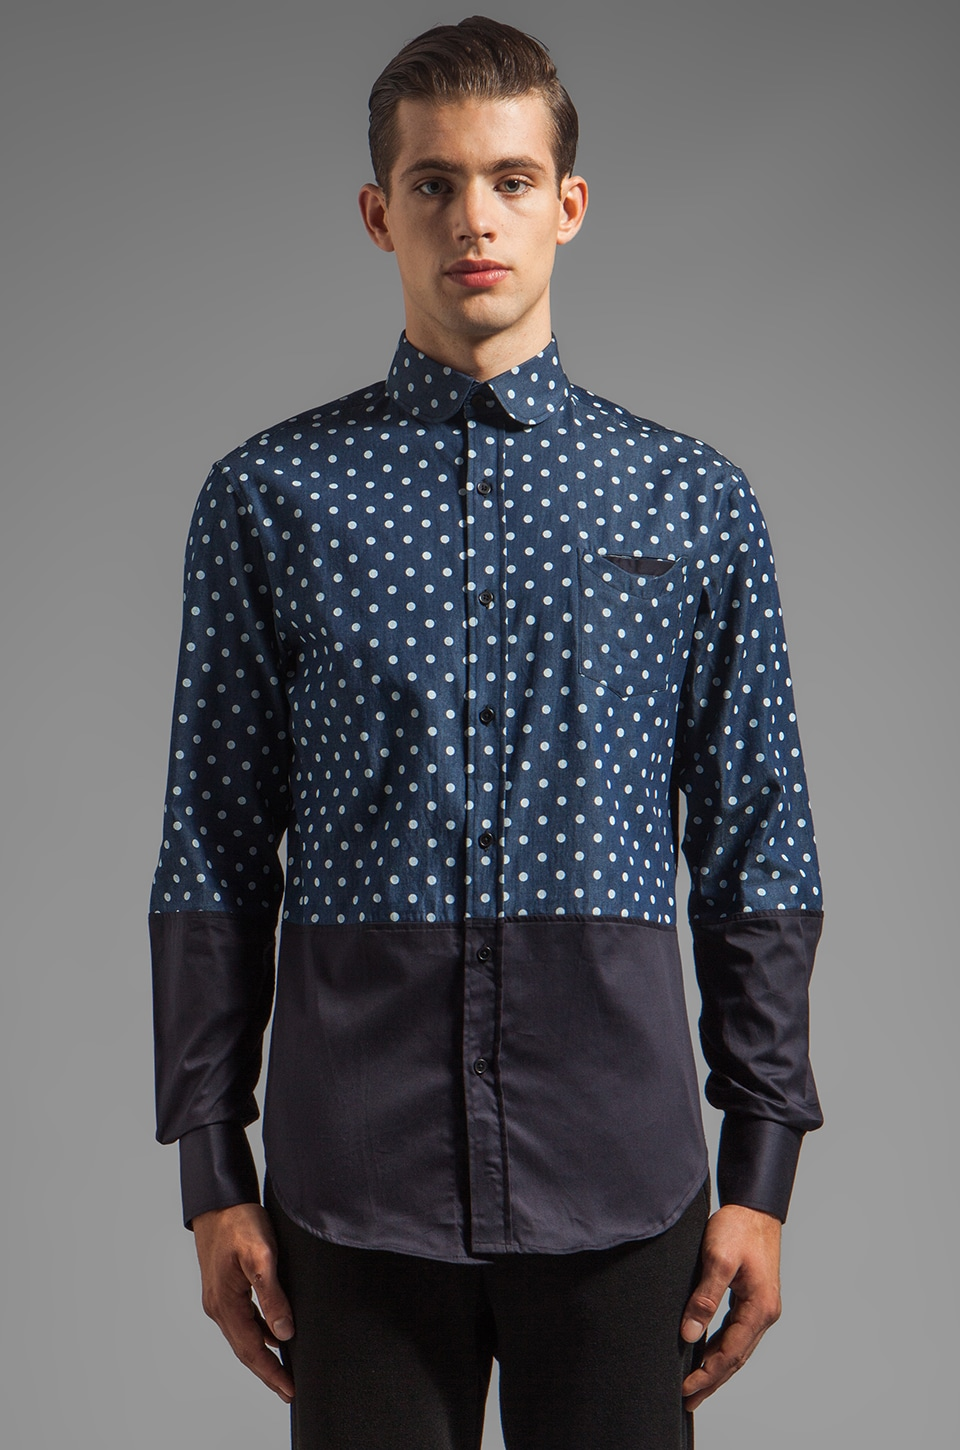 Munsoo Kwon Dotted Pocket Shirt in Indigo/Navy